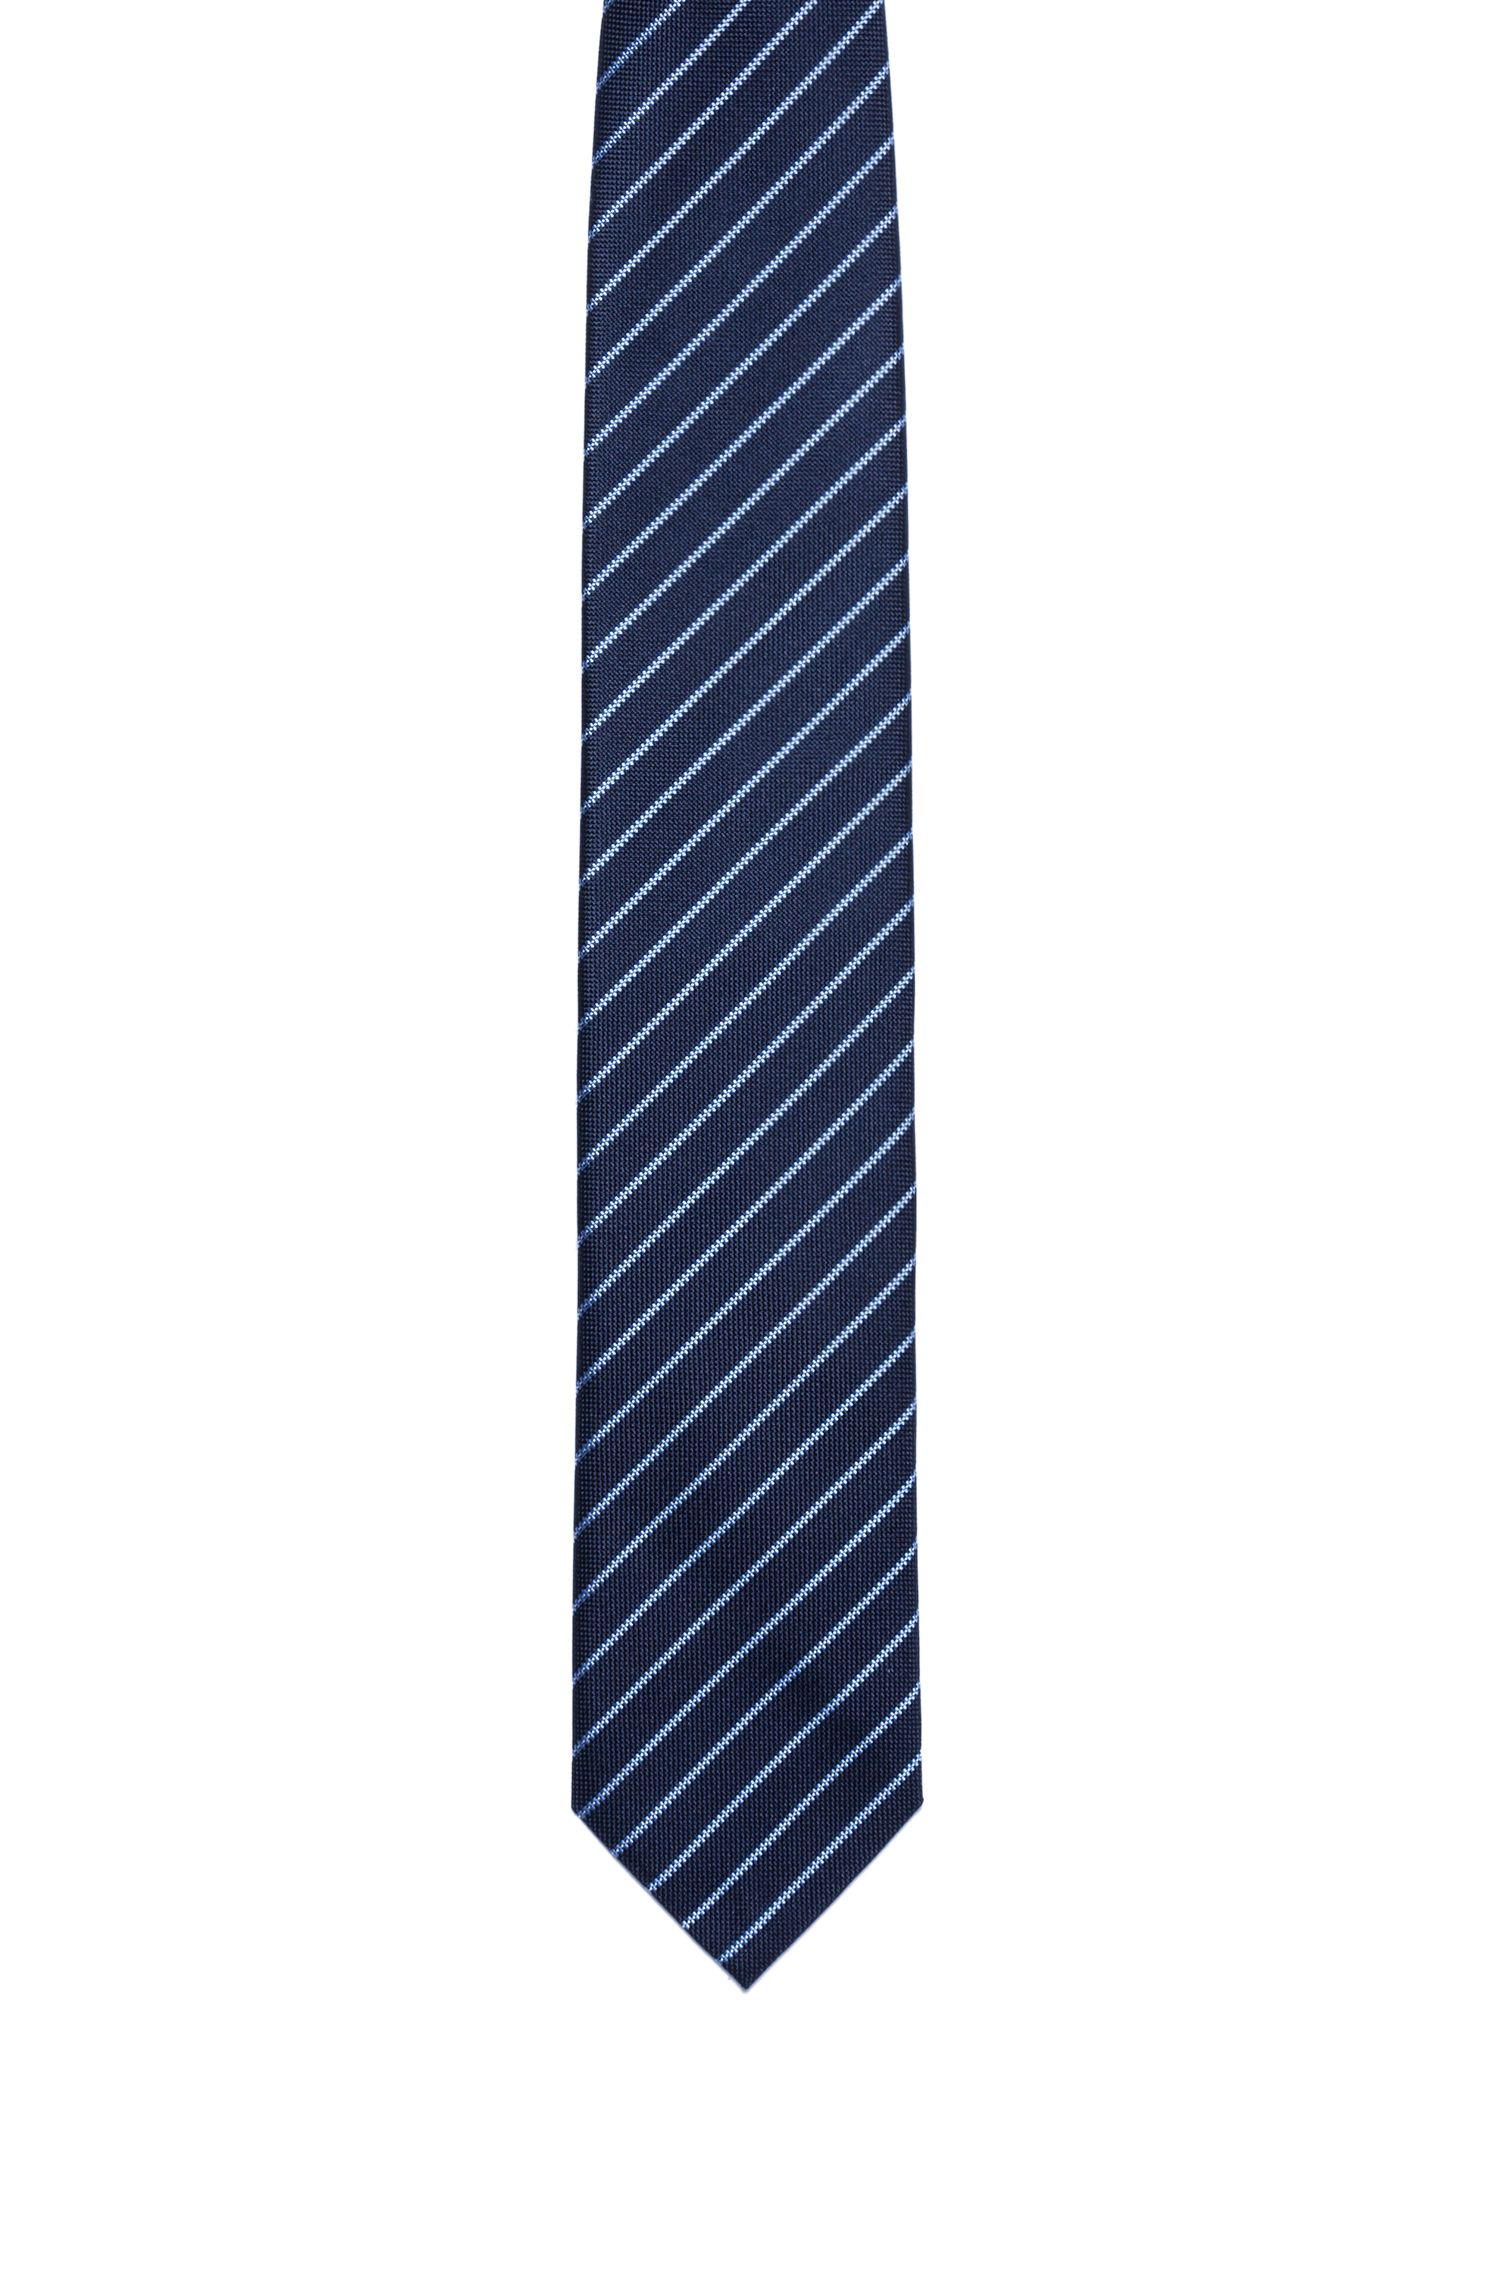 Silk tie with diagonal stripe pattern